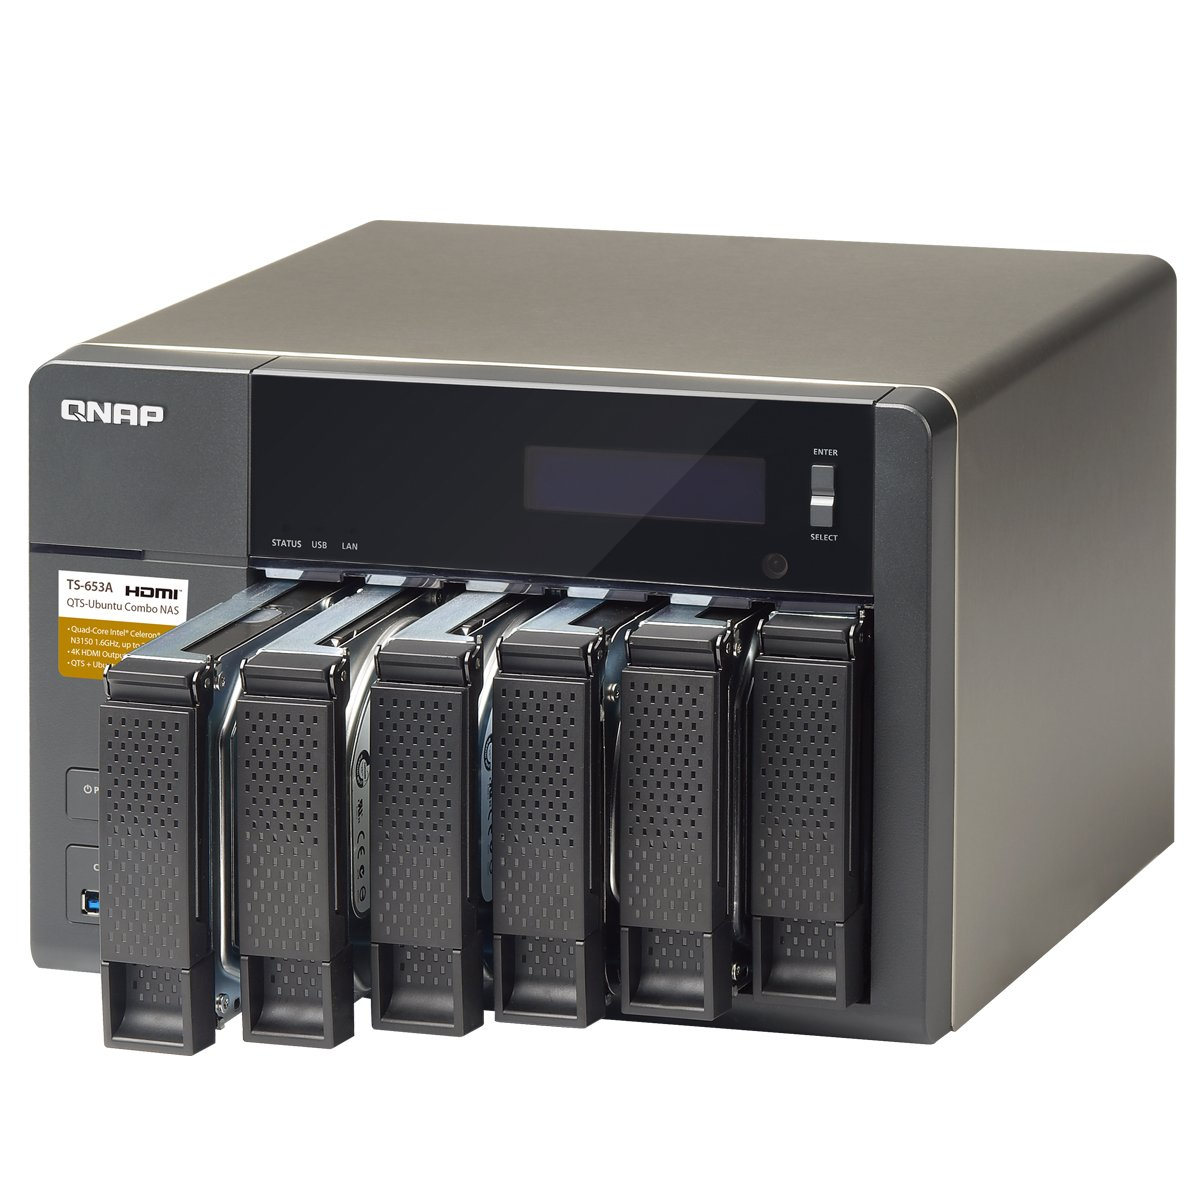 QNAP TS-653A (8GB RAM version) 6-Bay Professional-Grade Network Attached Storage, Supports 4K Playback (TS-653A-8G-US) by QNAP (Image #2)